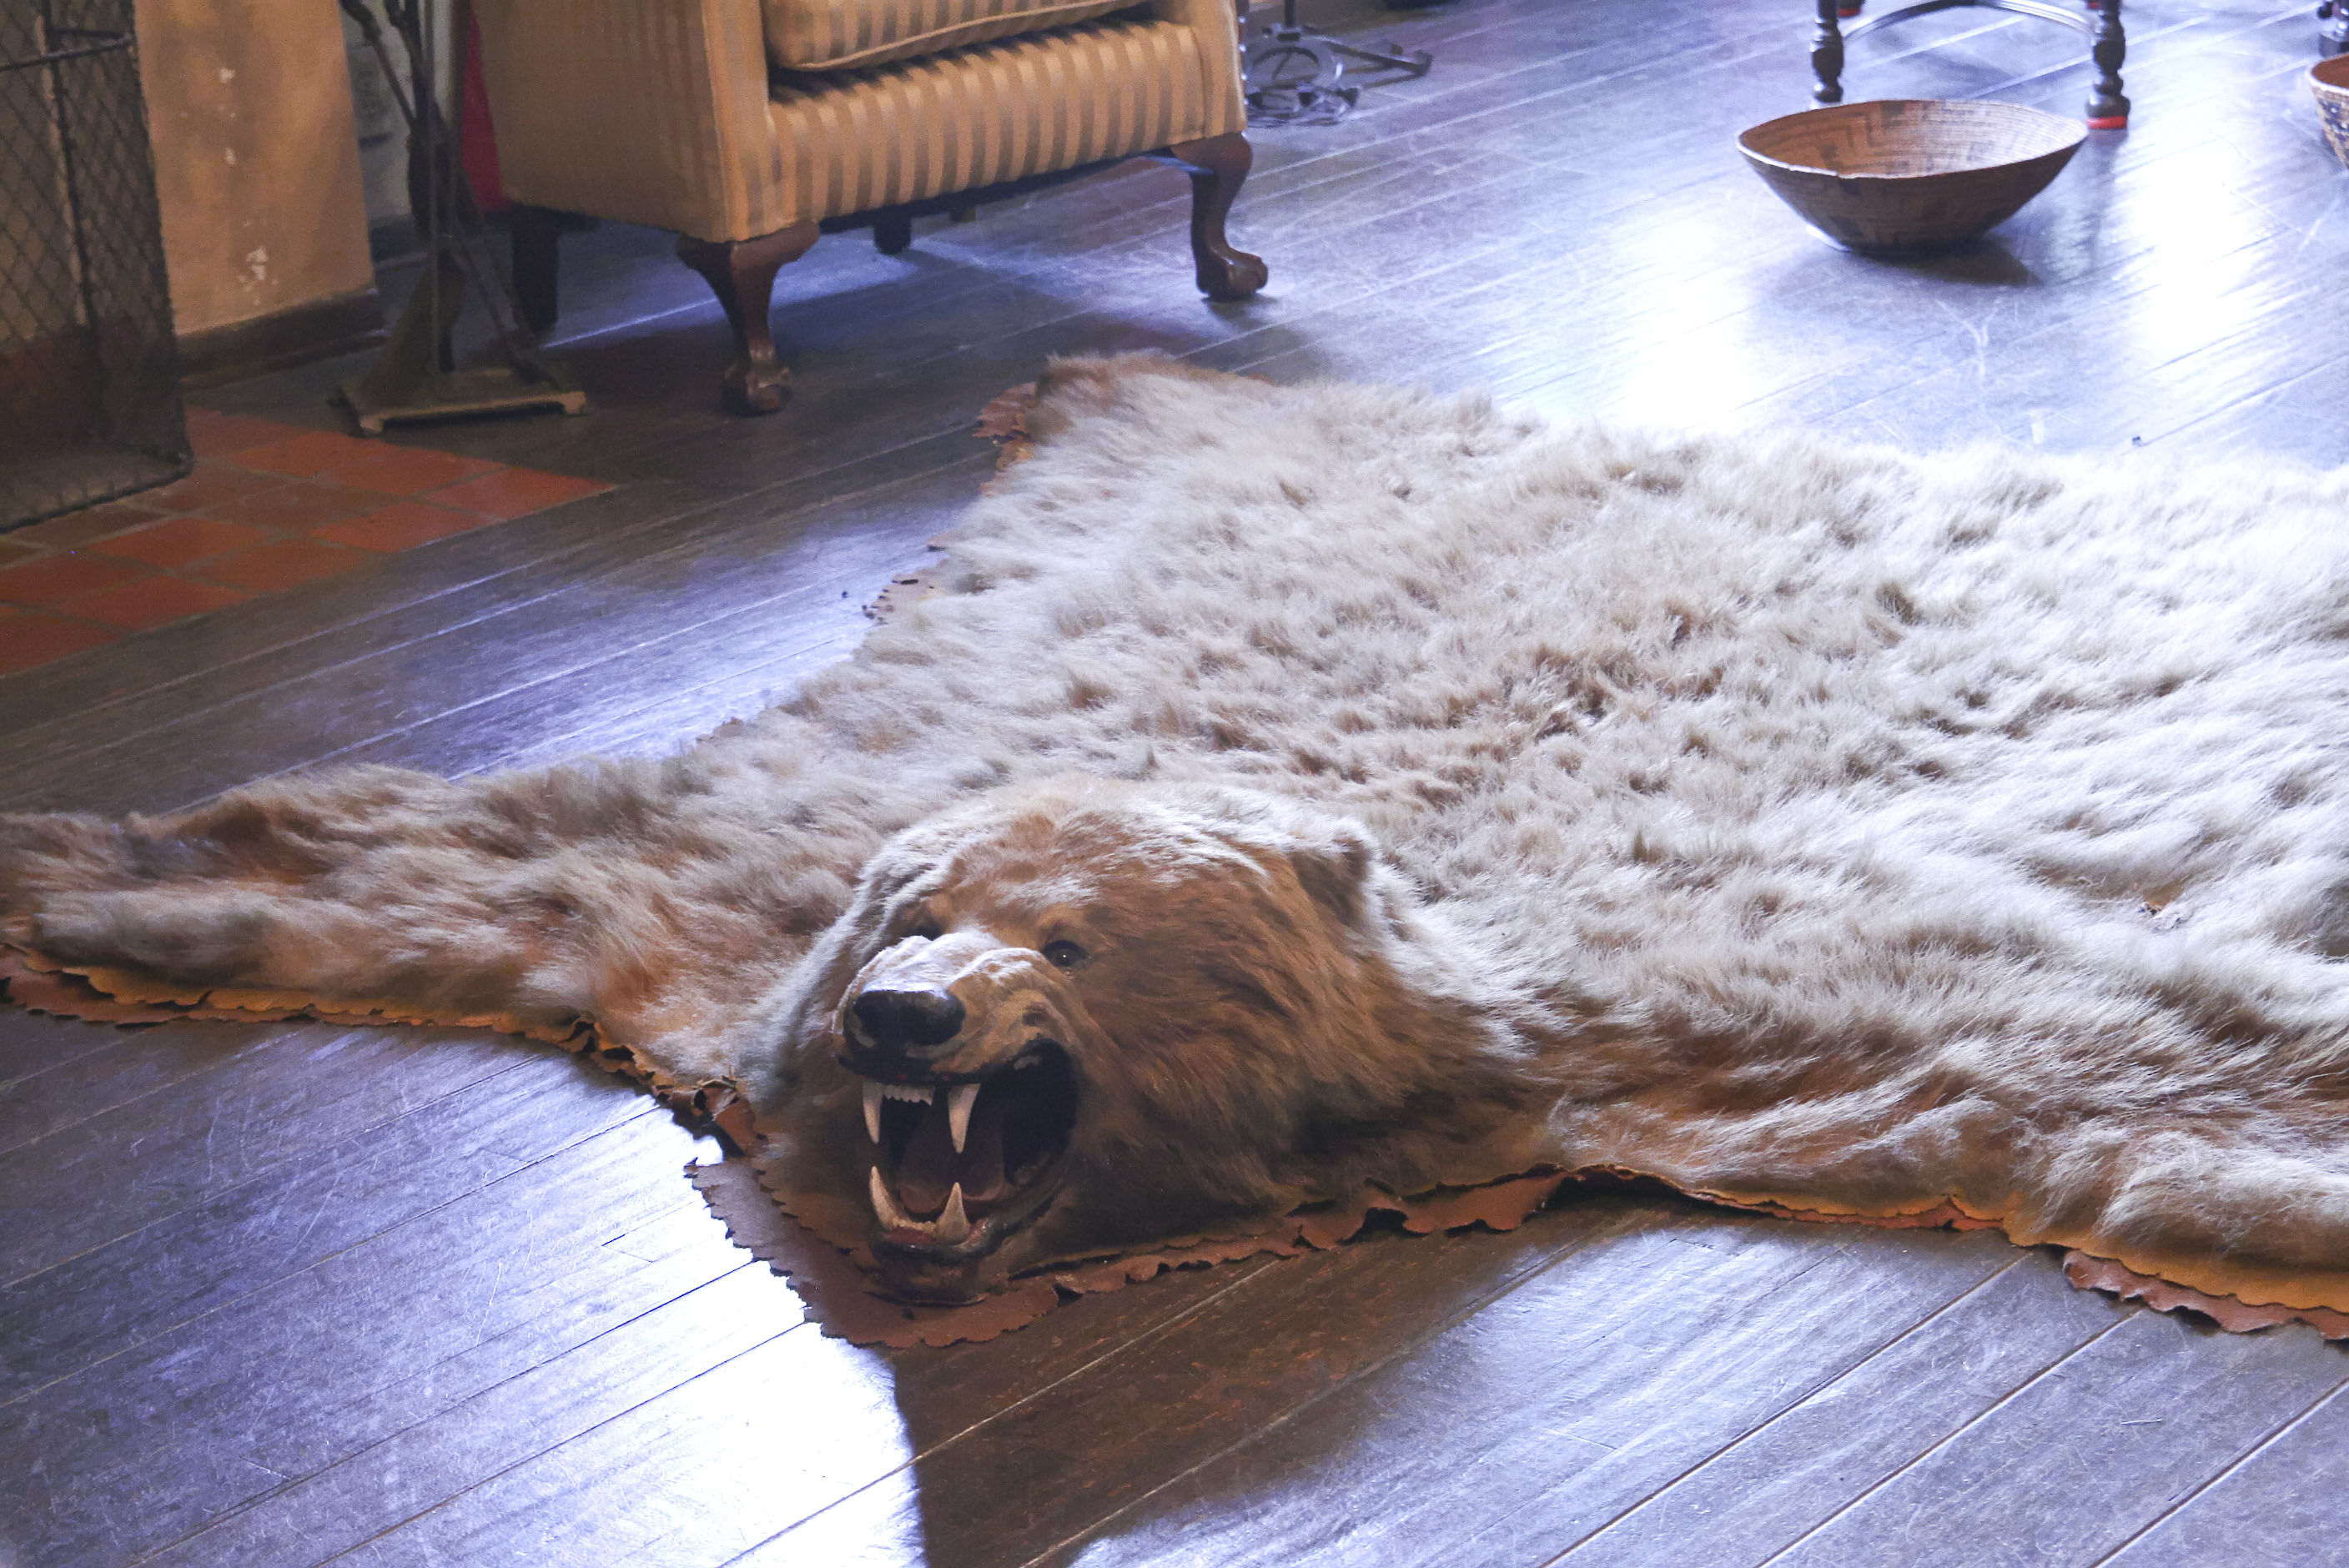 decoration arctic fur best luxurious rug sheep skin wonderful random and sheepskins accent fake sheepskin faux design bear quality polar shape